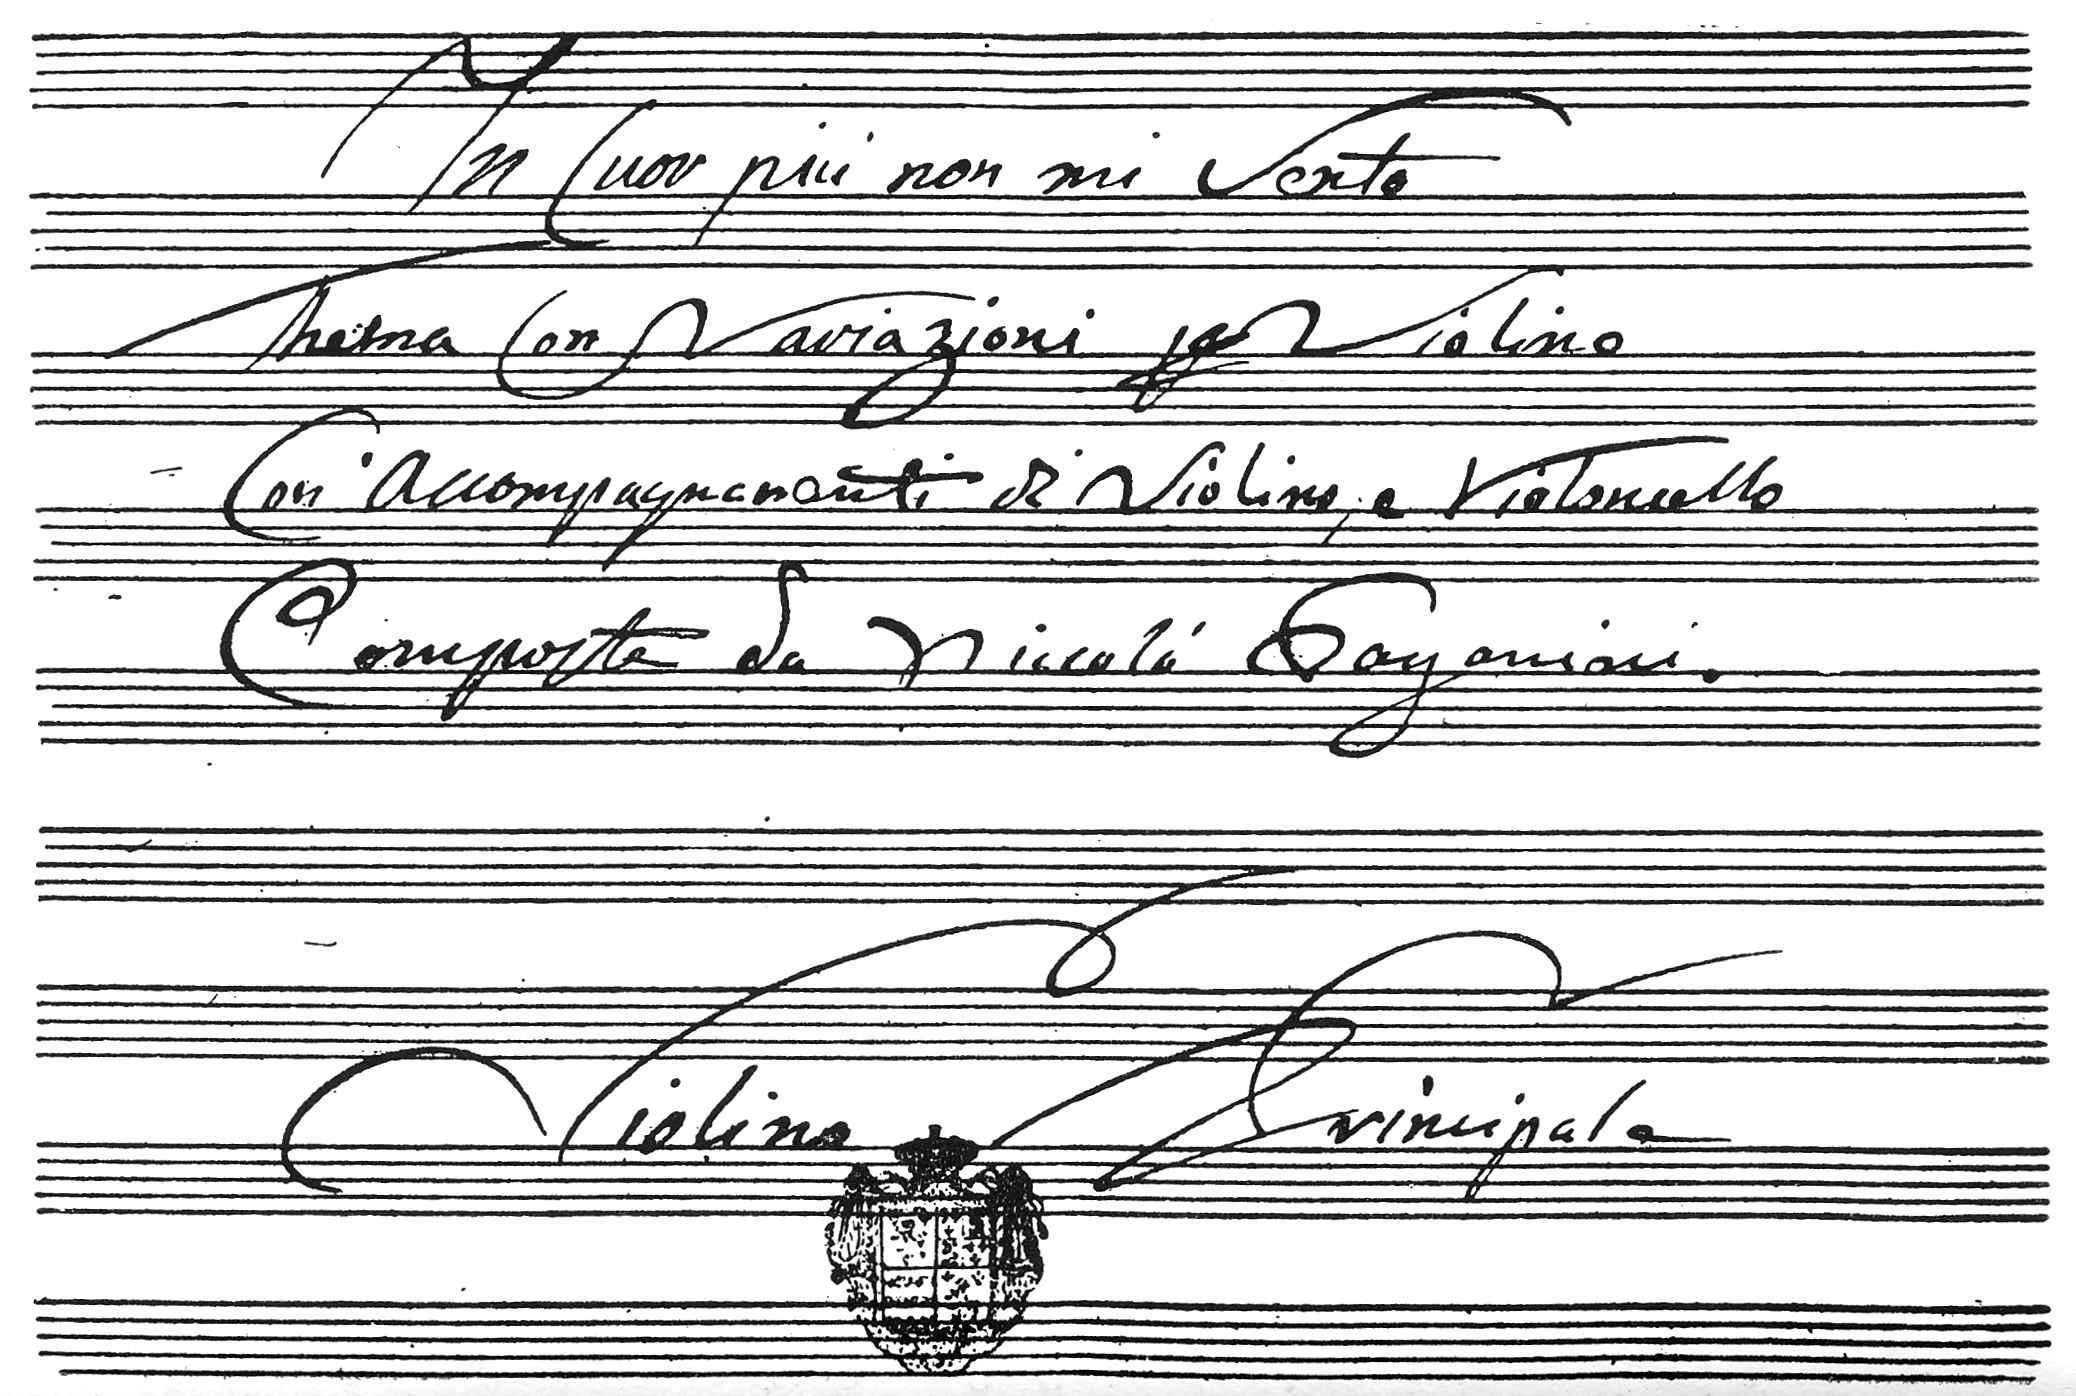 Nicolo paganini his life and work stephen samuel stratton plate 25 see appendix musical manuscript by paganini fandeluxe Choice Image